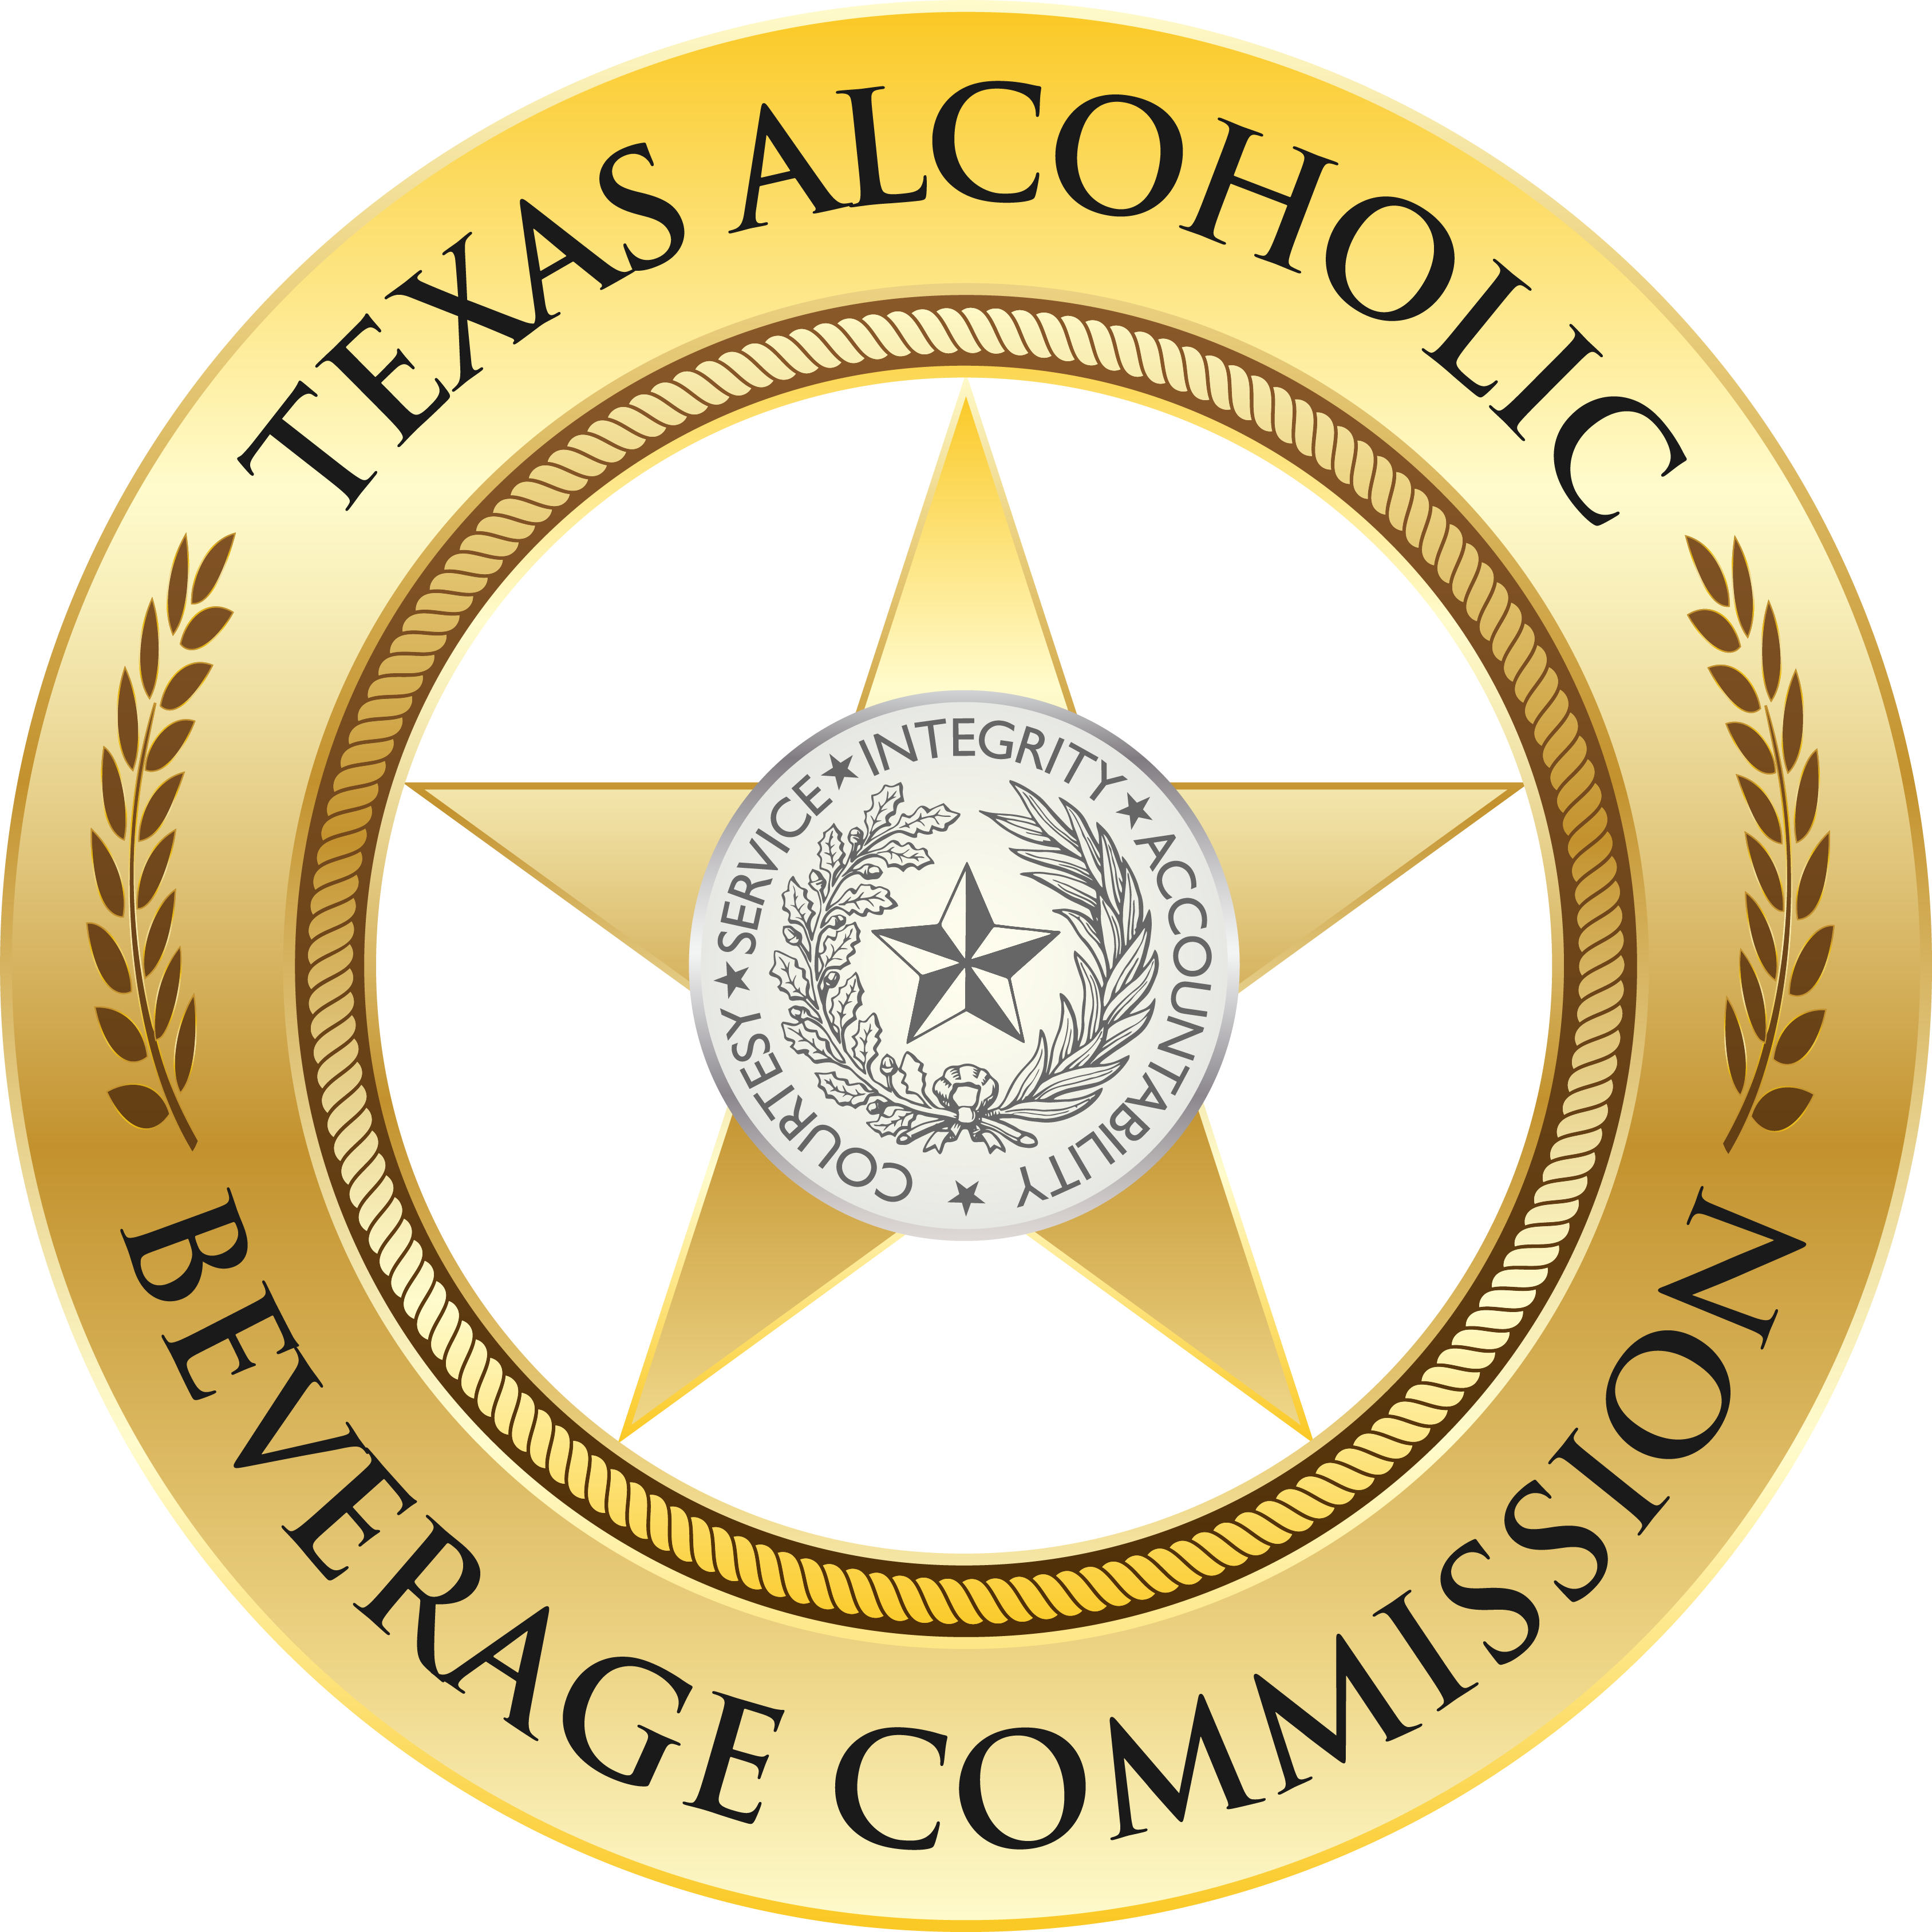 Texas Alcoholic Beverage Commission - Wikipedia